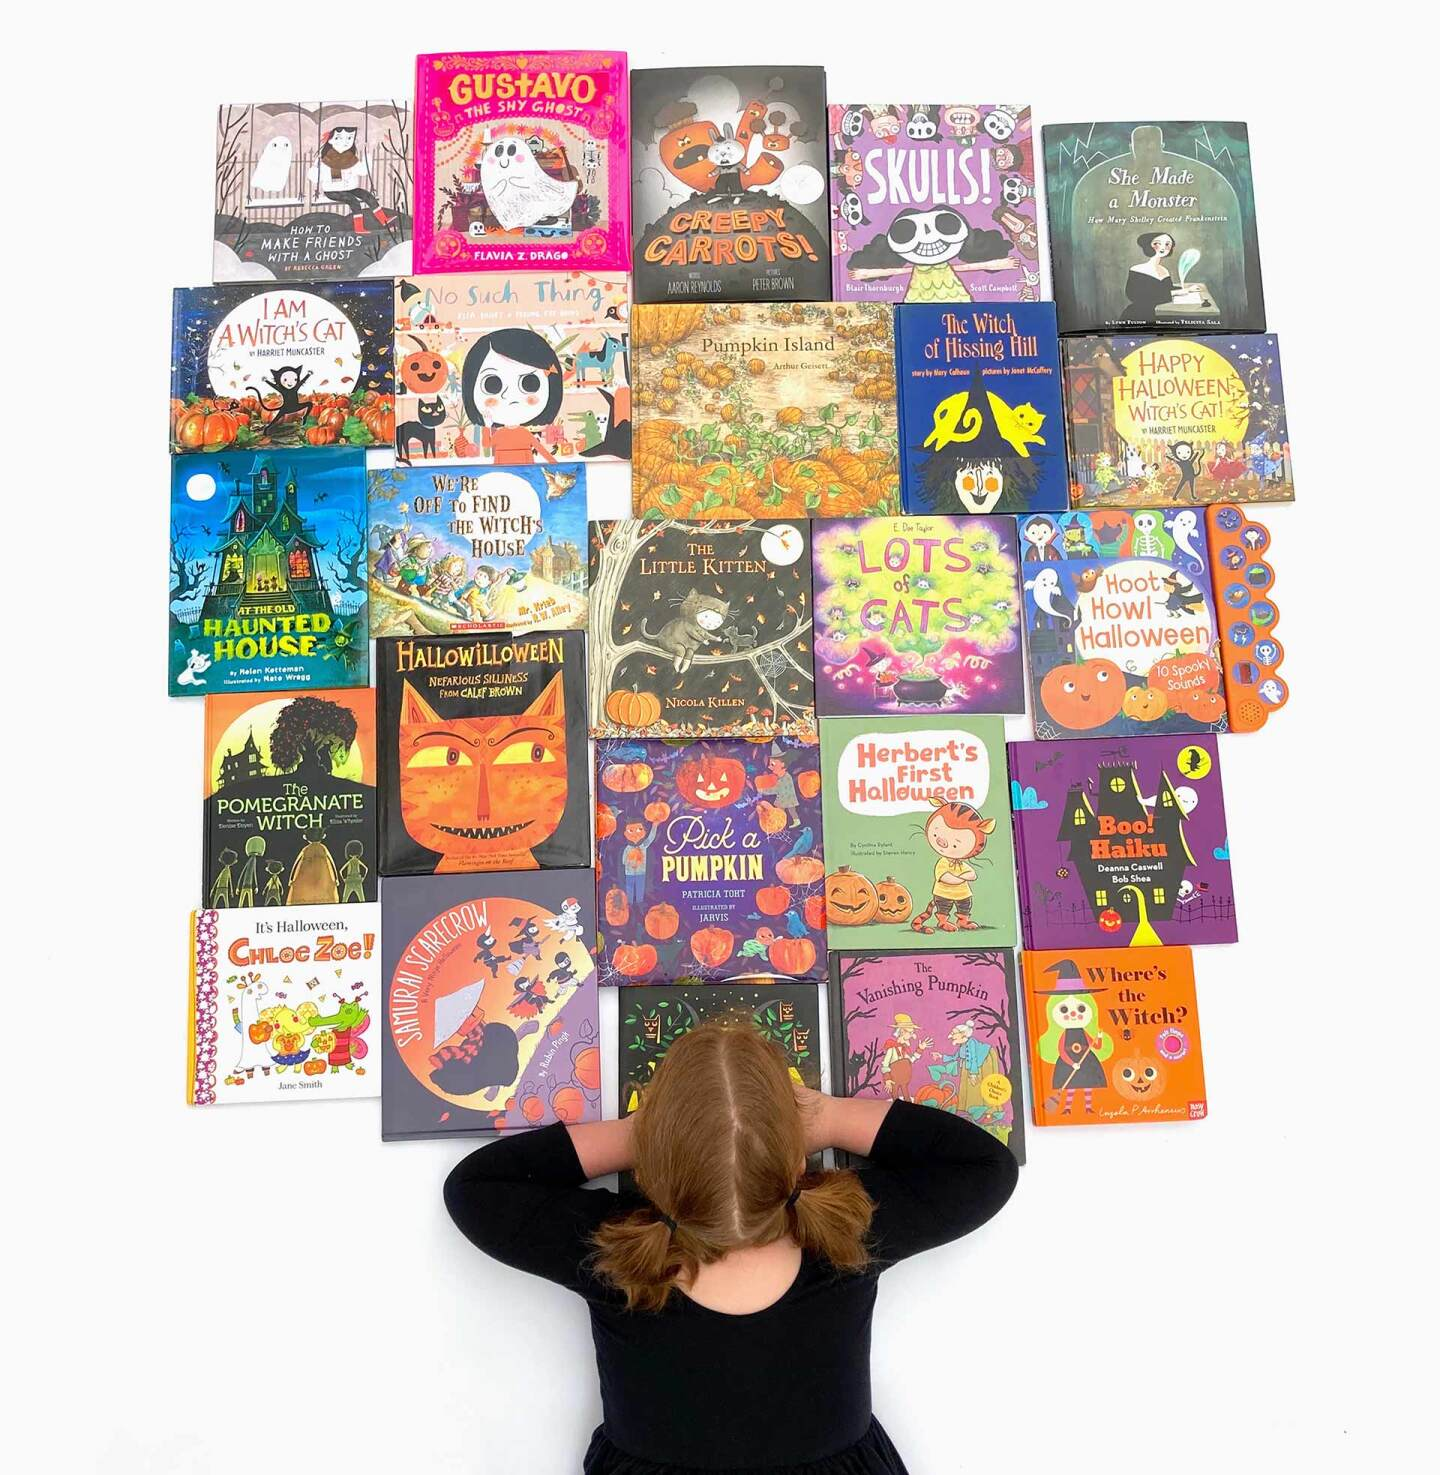 View of a little girl from above as she looks over 23 books arranged on the floor.